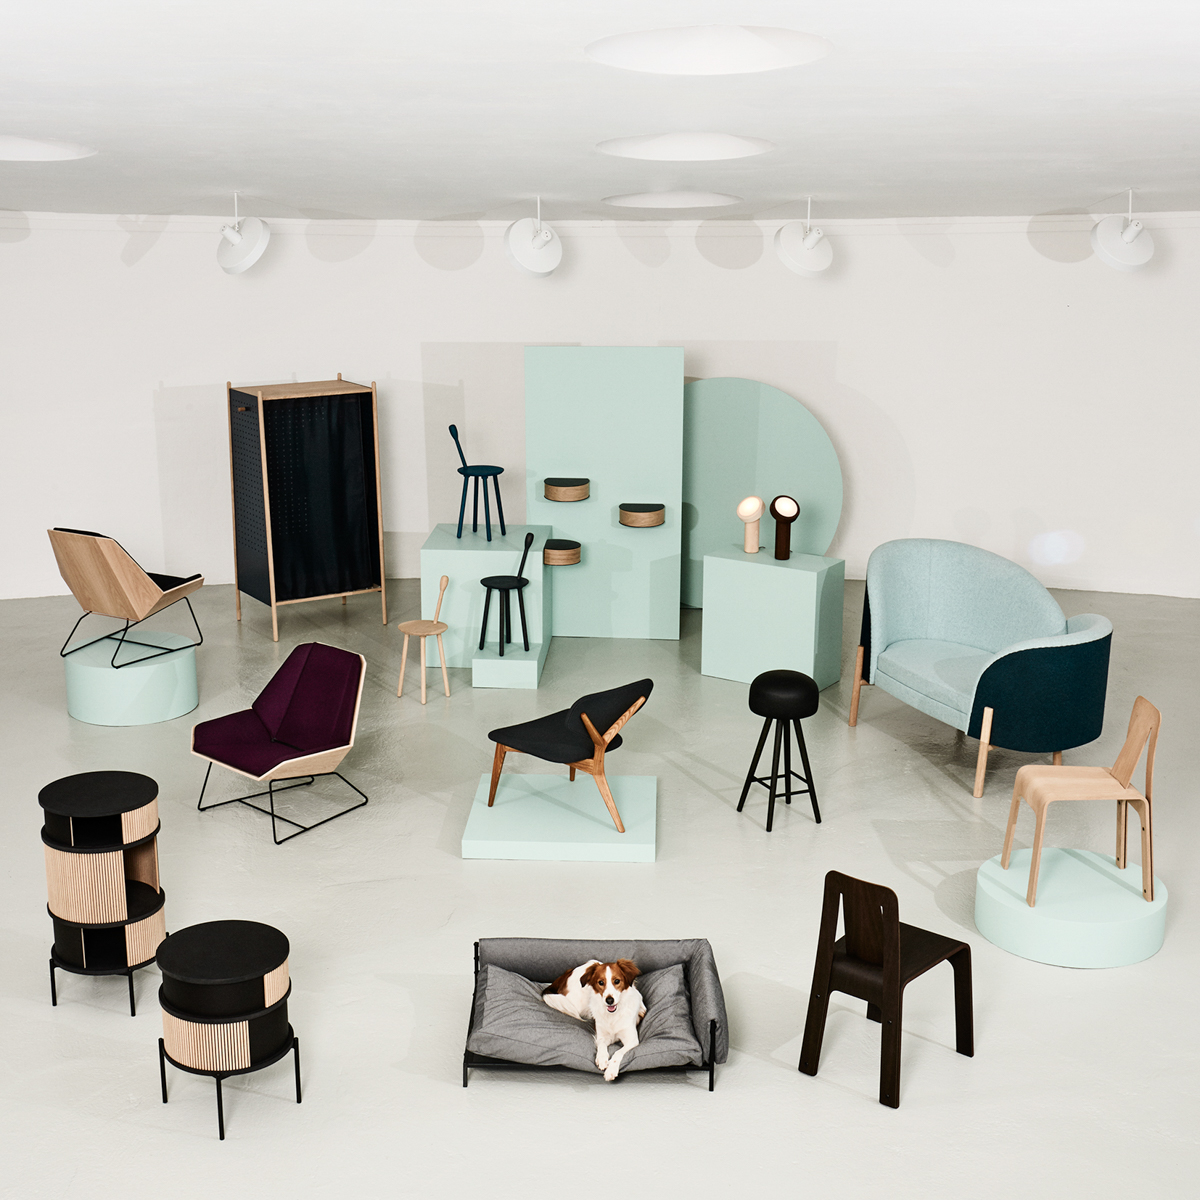 Via 39 S Furniture Students Exhibit At Stockholm Design Milk